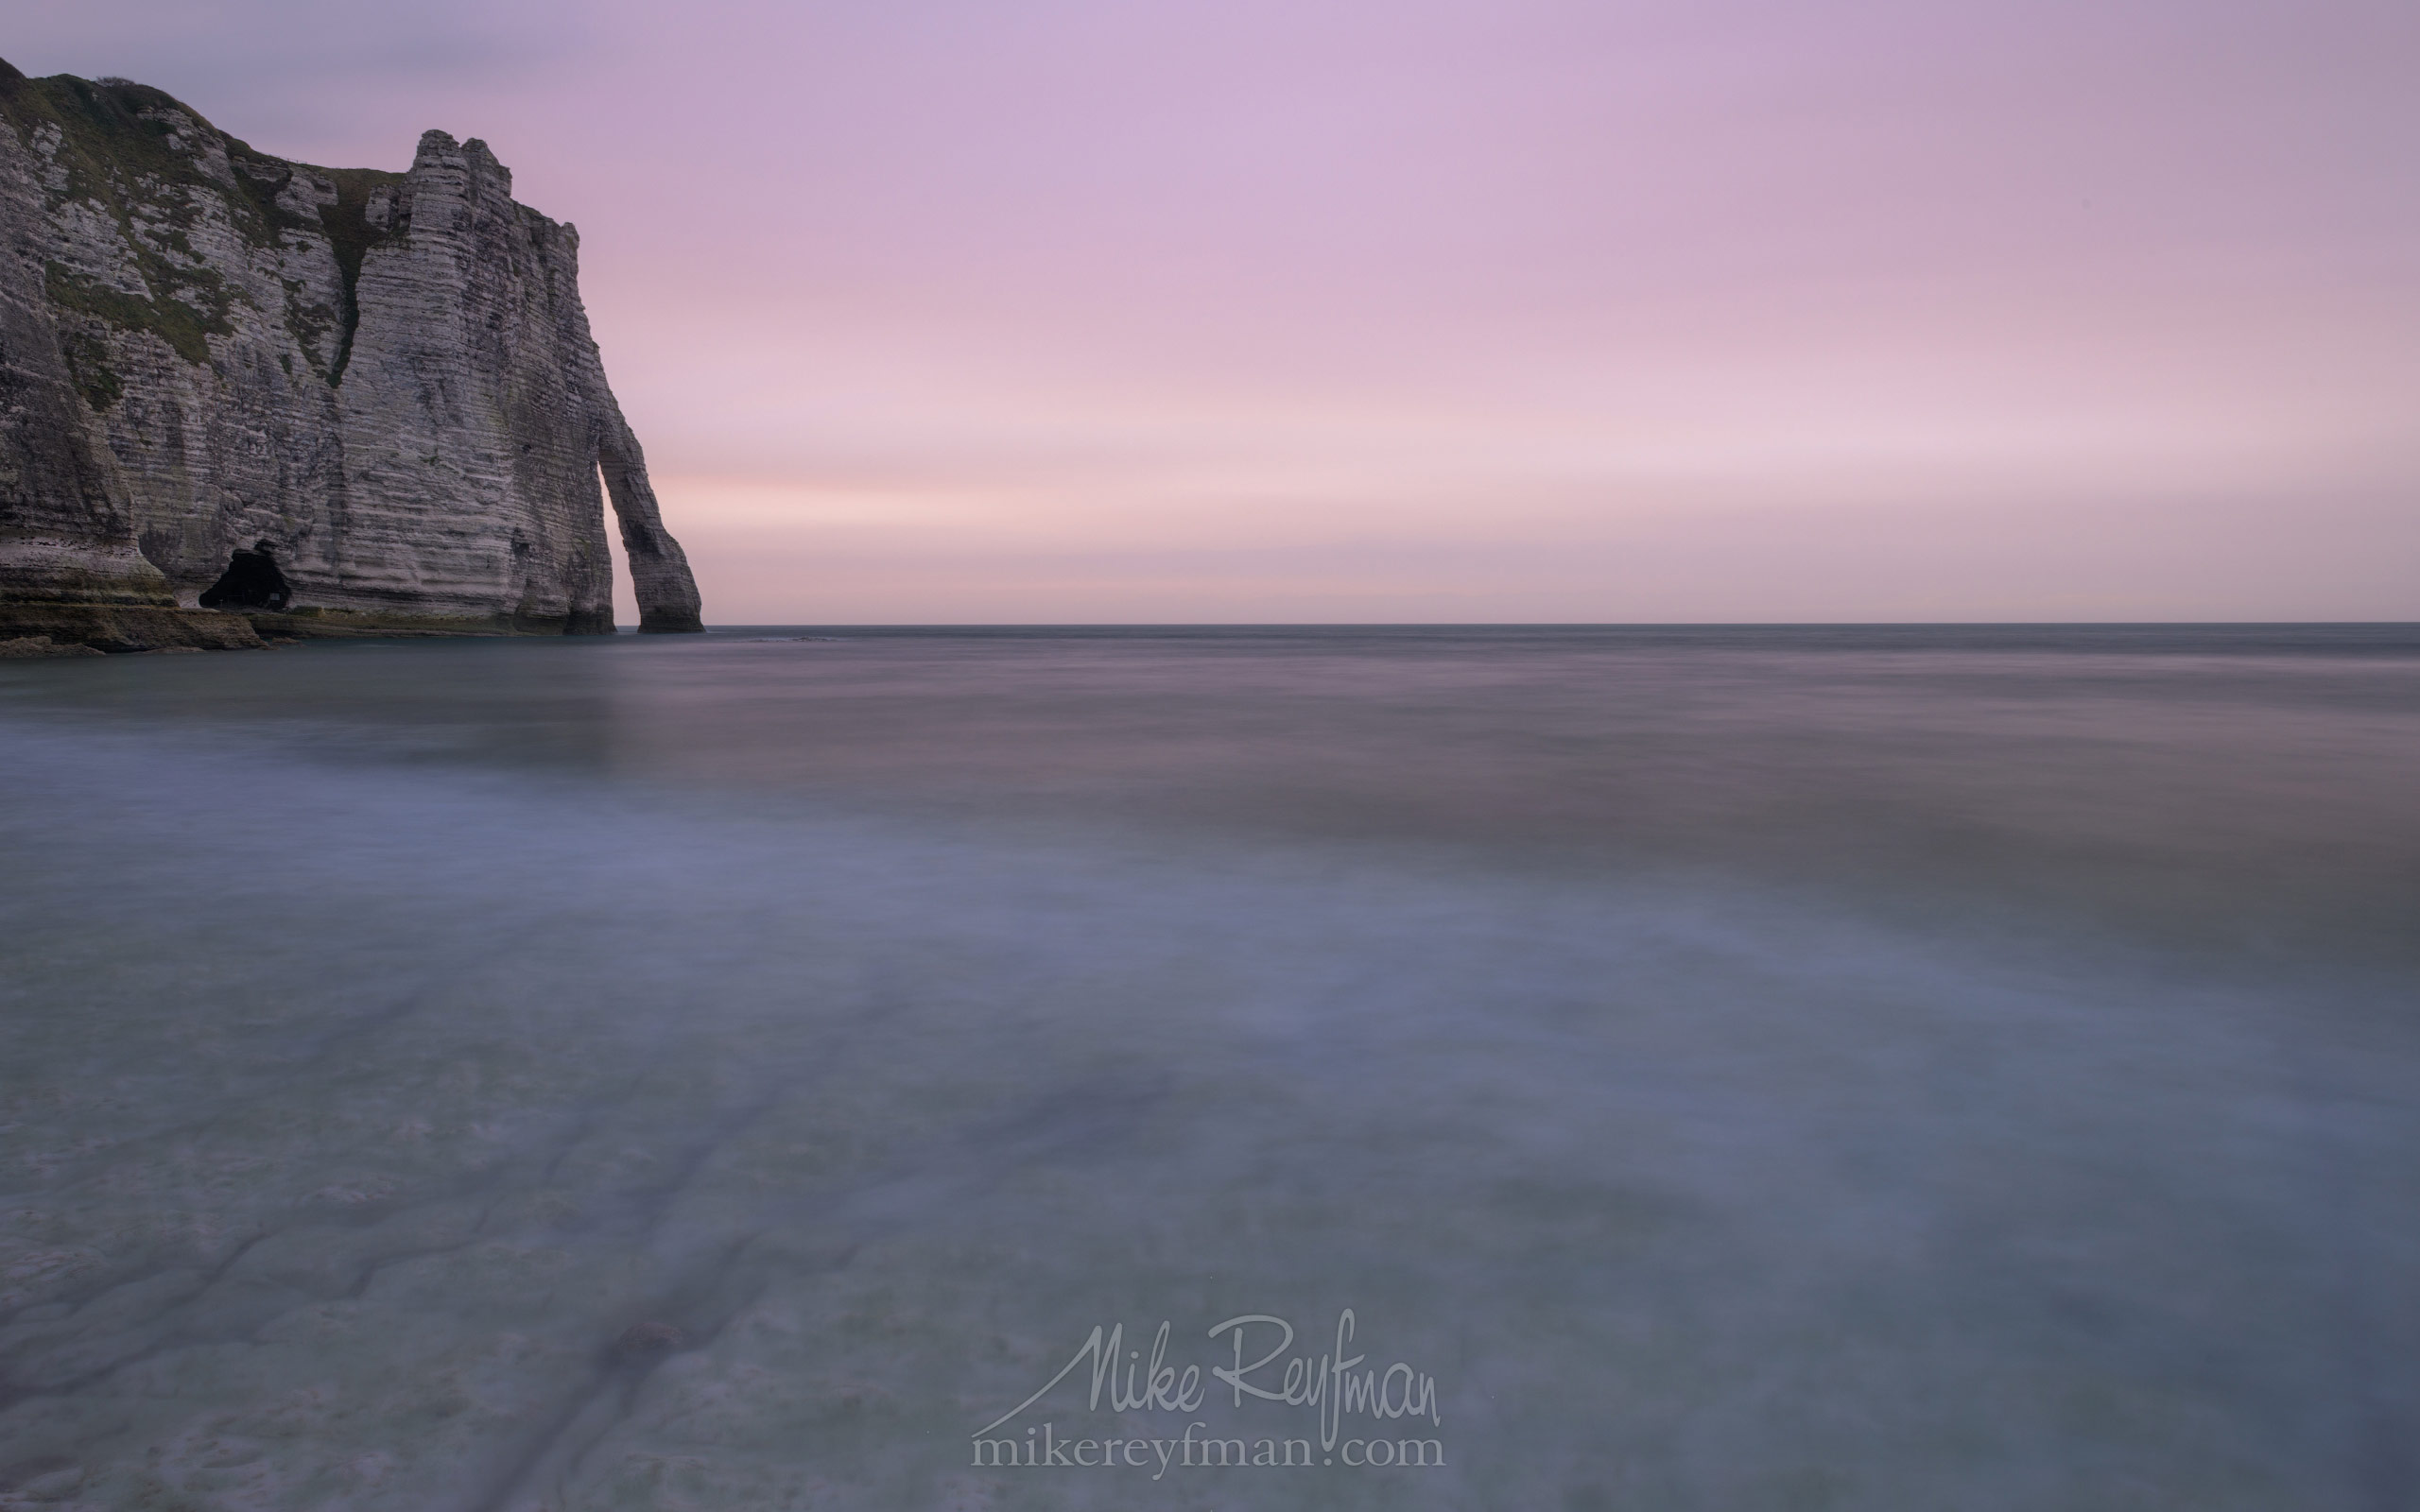 Arch Porte d'Aval at sunset. Cote d'Albatre – The Alabaster Coast. Ertretat, Normandy, France ET1-MR50A0509 - White Chalk Cliffs and Arches of Alabaster Coast. Etretat, Upper Normandy, France - Mike Reyfman Photography